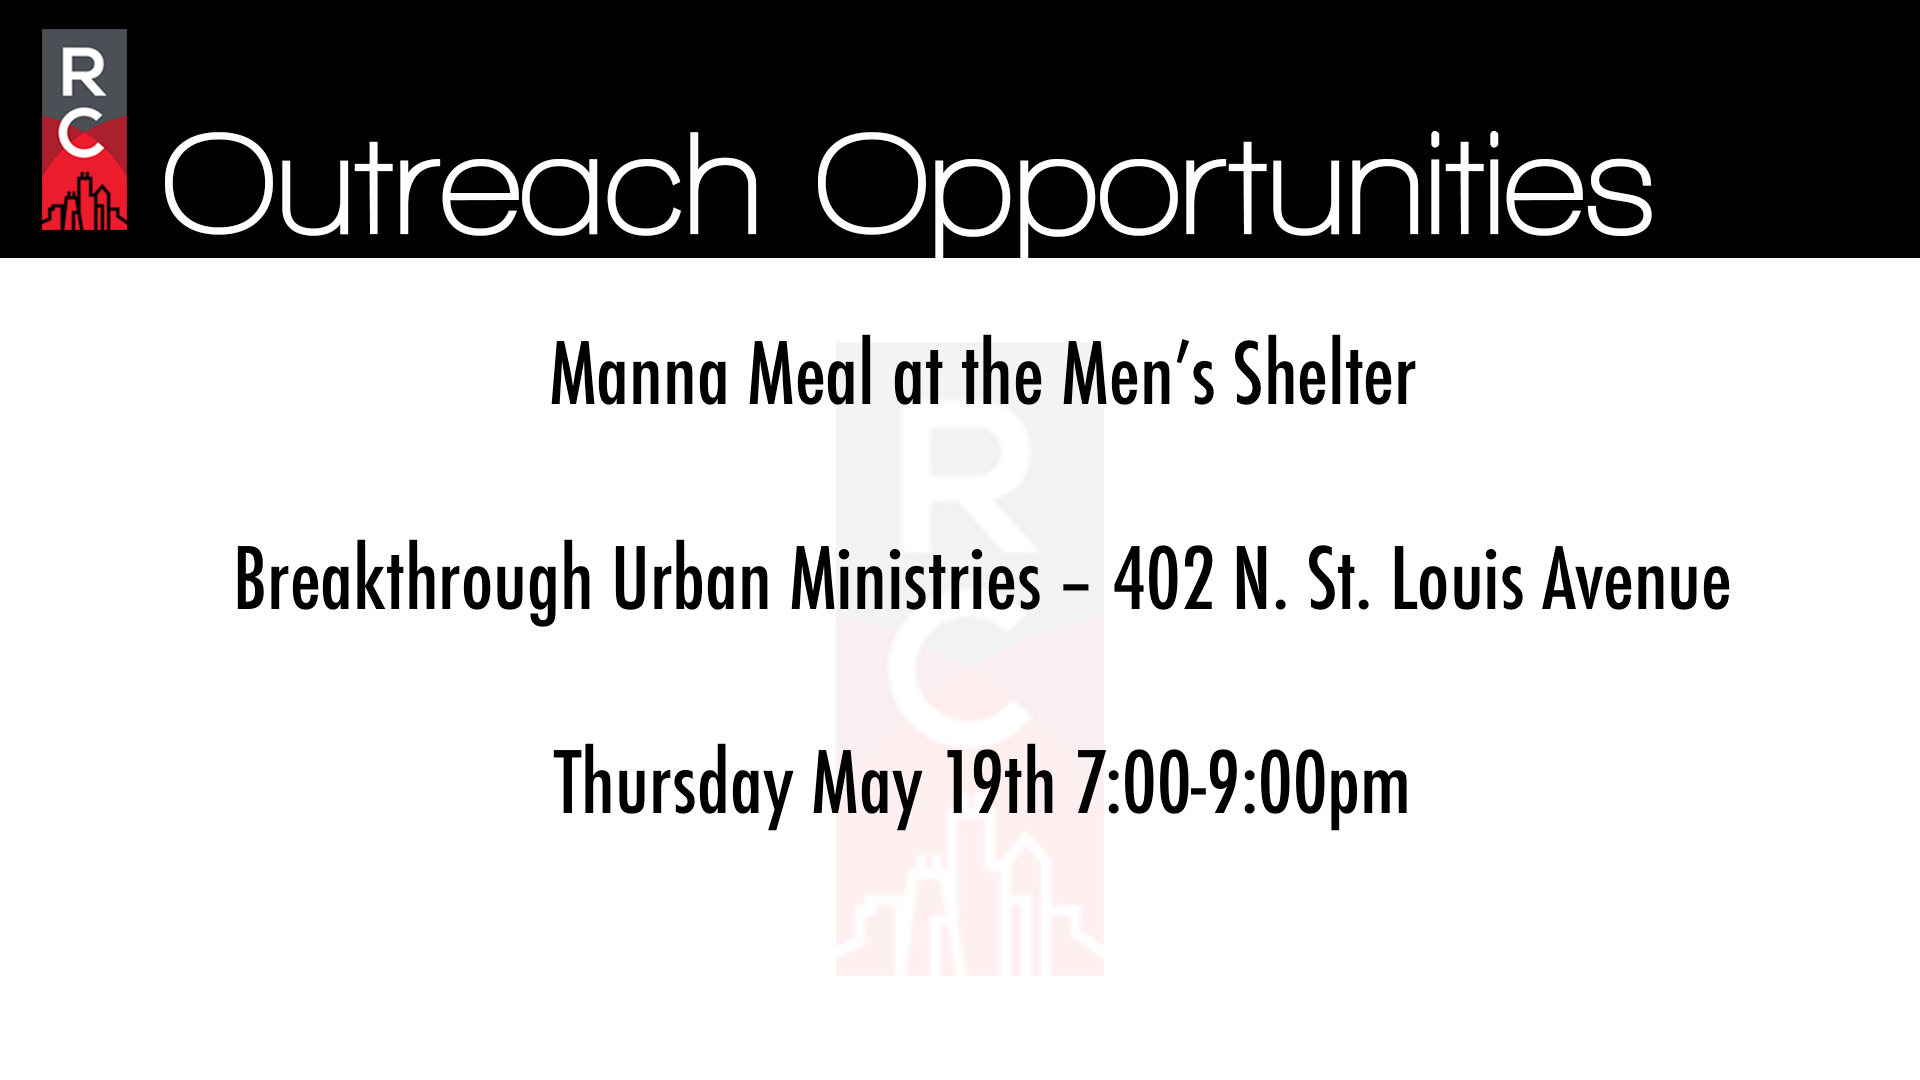 We want to be for our city in practical ways. Please join us on May 19th as we serve the Breakthrough Men's Center. We'll be providing an evening meal for the shelter.  Volunteer Sign Up sheet is on the informational table on Sunday or email kolby@renewalchicago.com